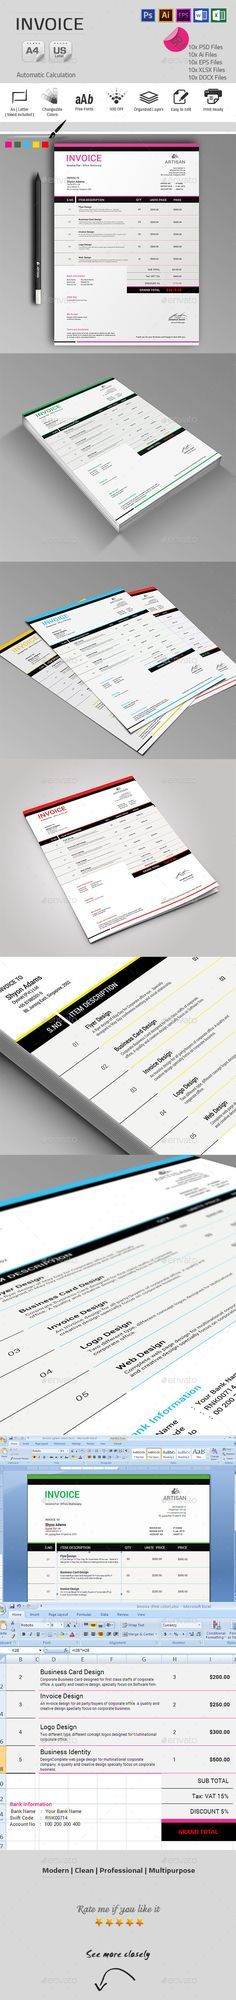 Business Invoice Templates Business, Invoice design and Print - business invoices templates